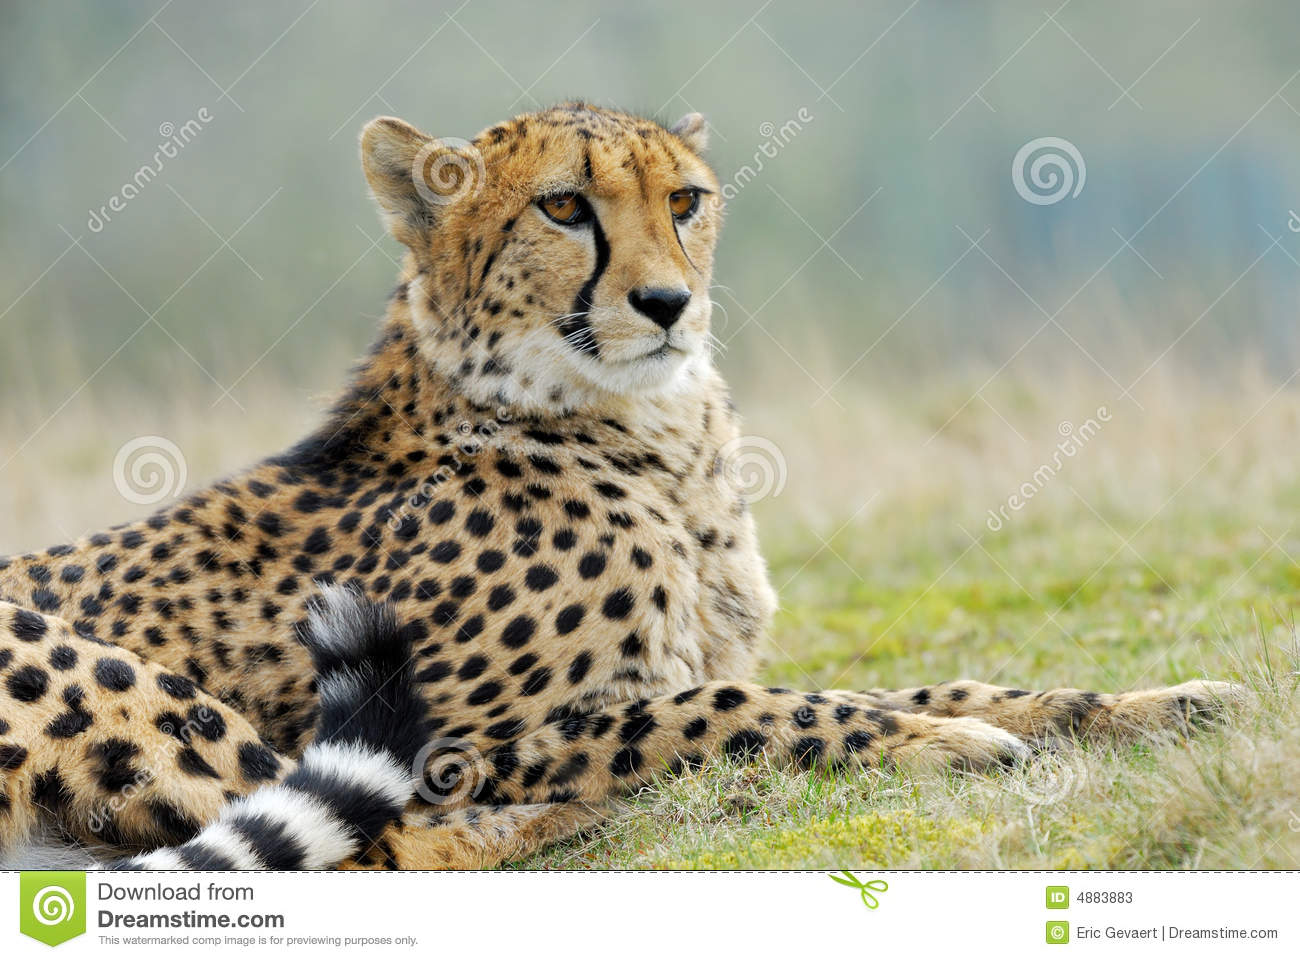 Beautiful Cheetah Stock Image. Image Of Behavior, Observe